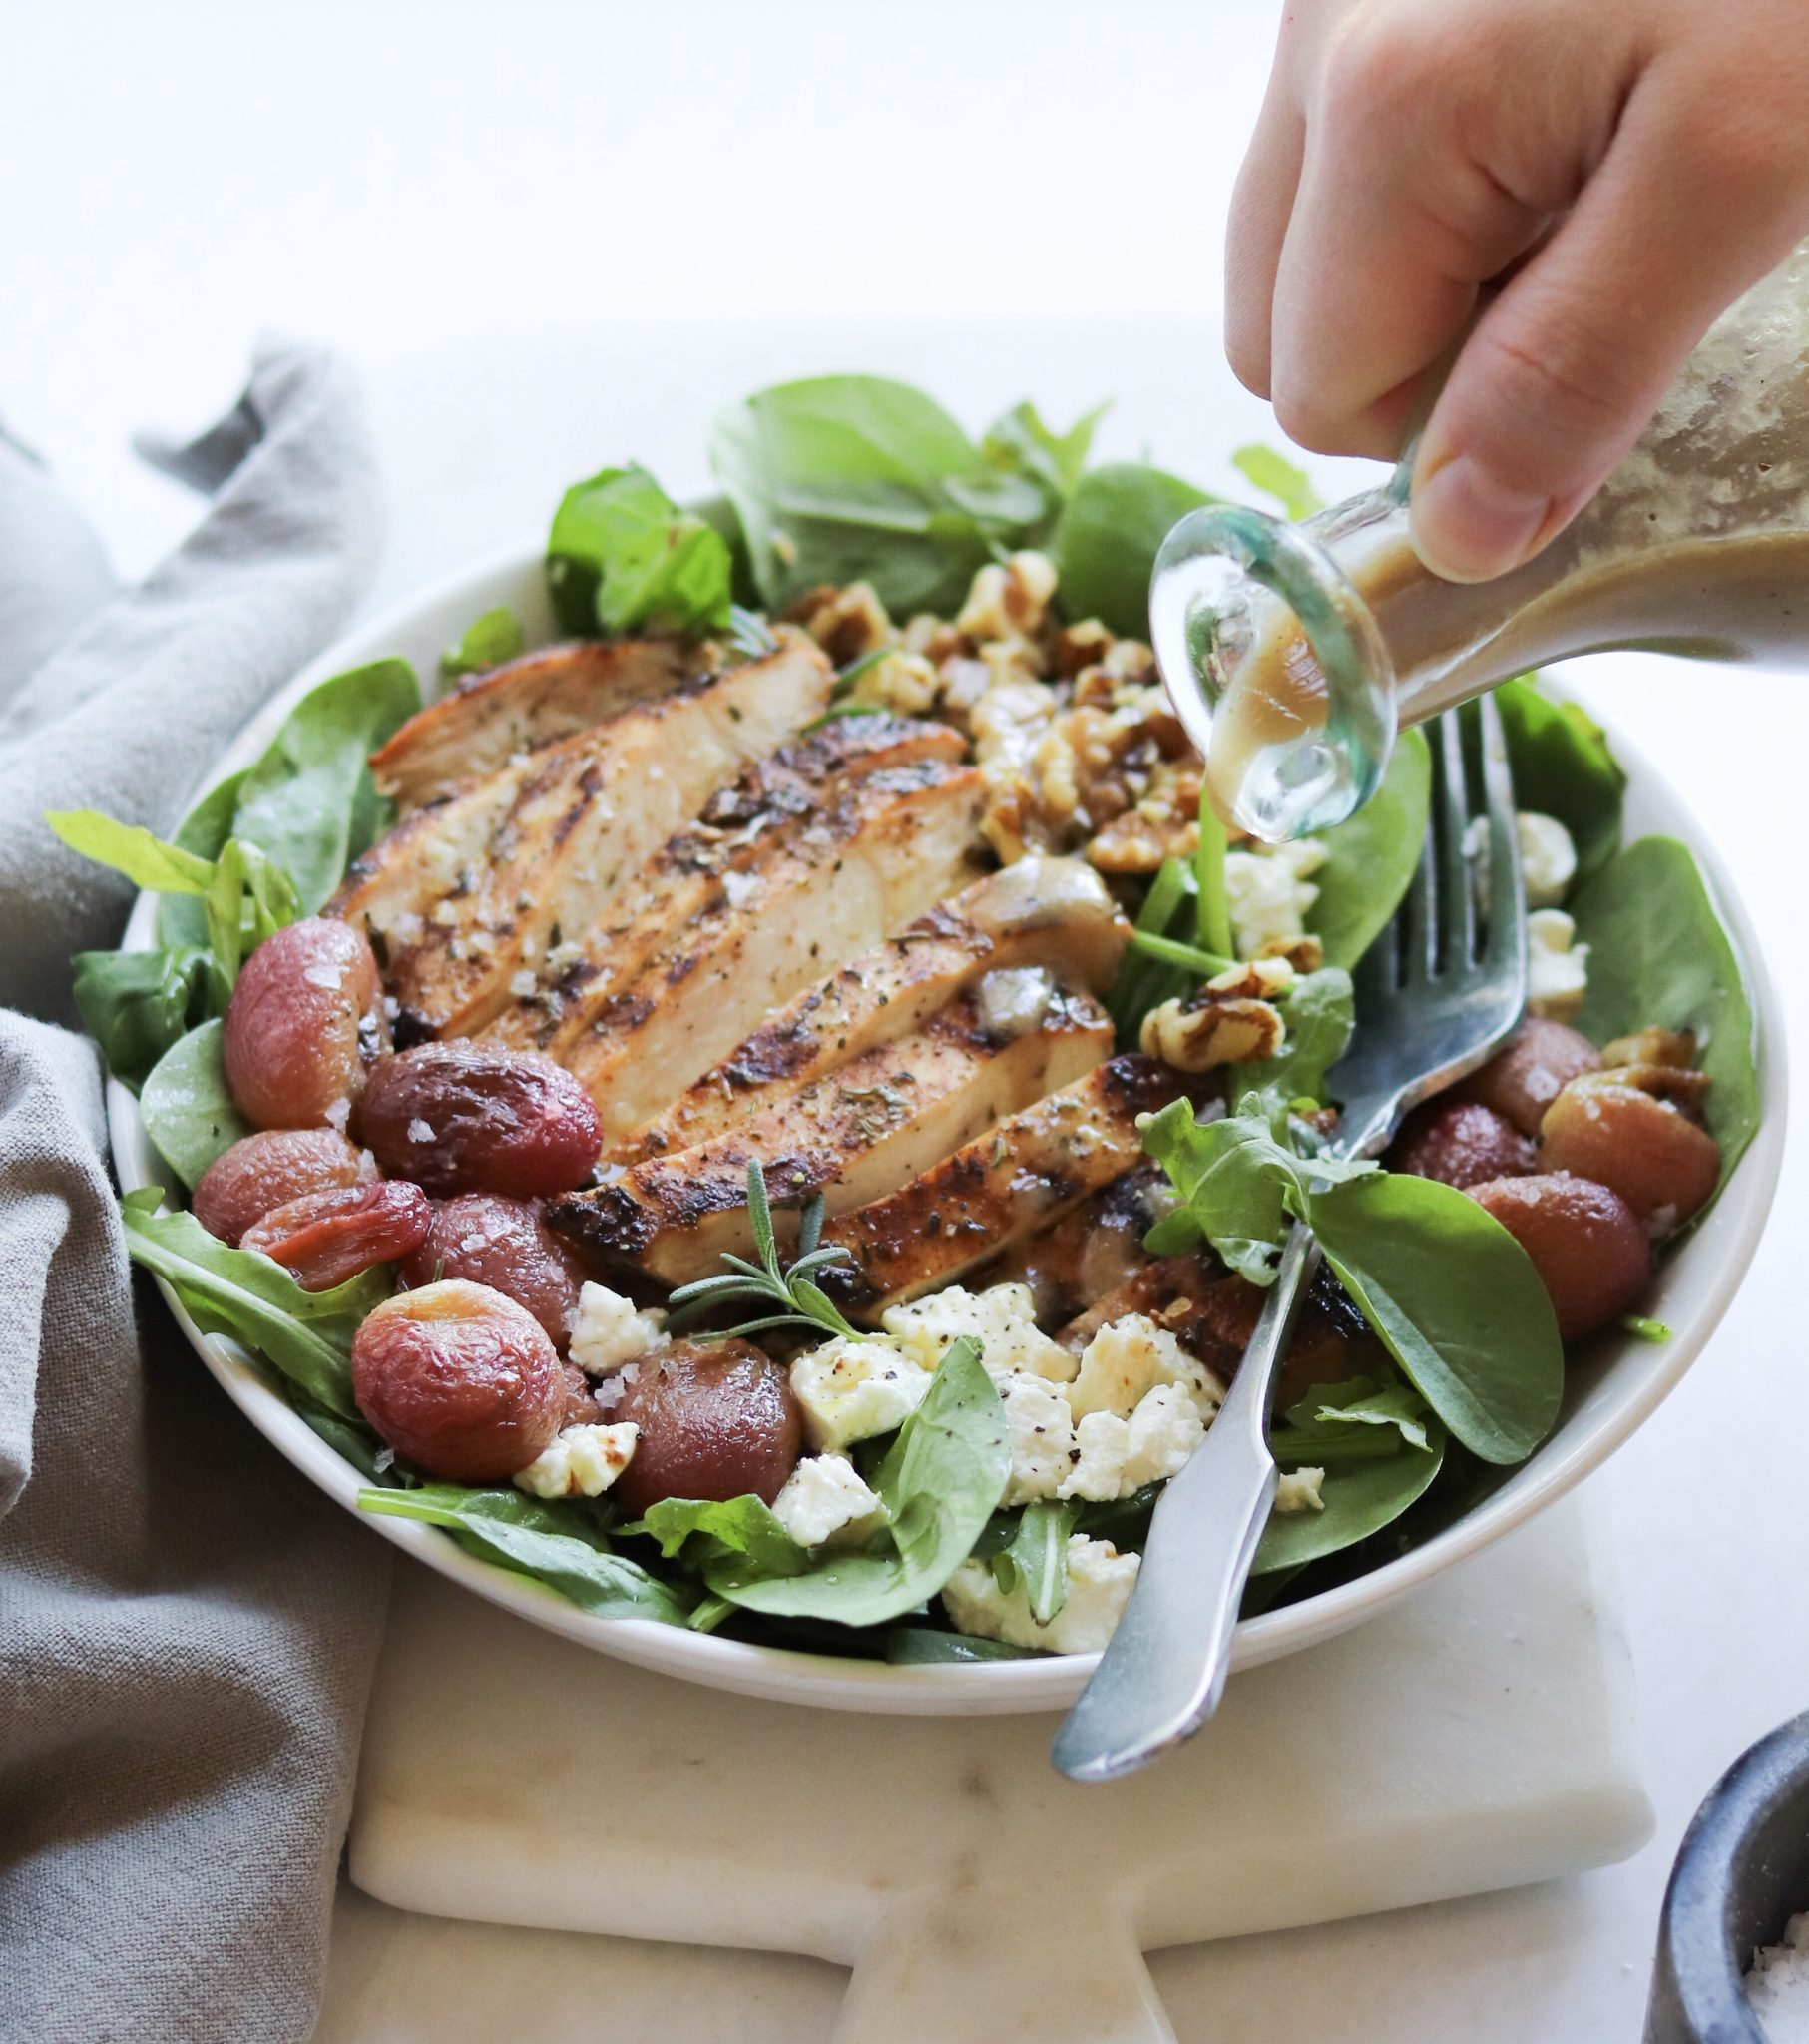 A hand pouring salad dressing from a glass bottle onto a completed dish with grilled chicken, spinach salad, and other toppings